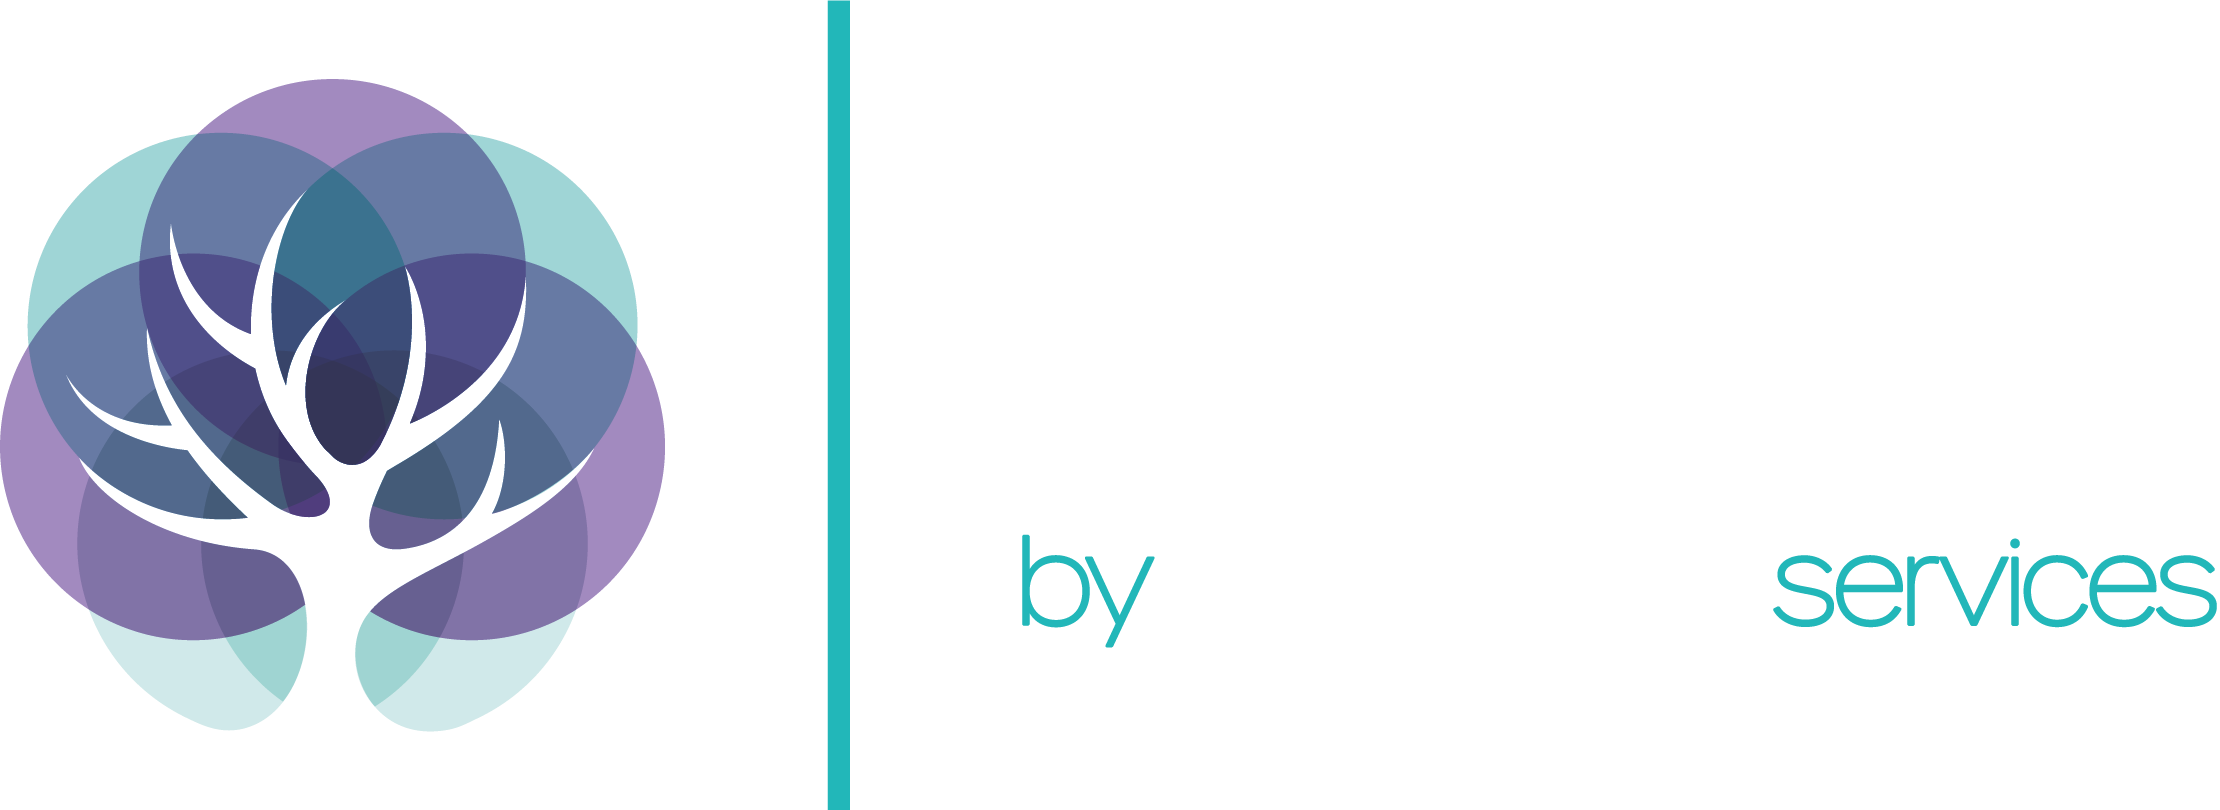 Lifestyle by Homecare Services